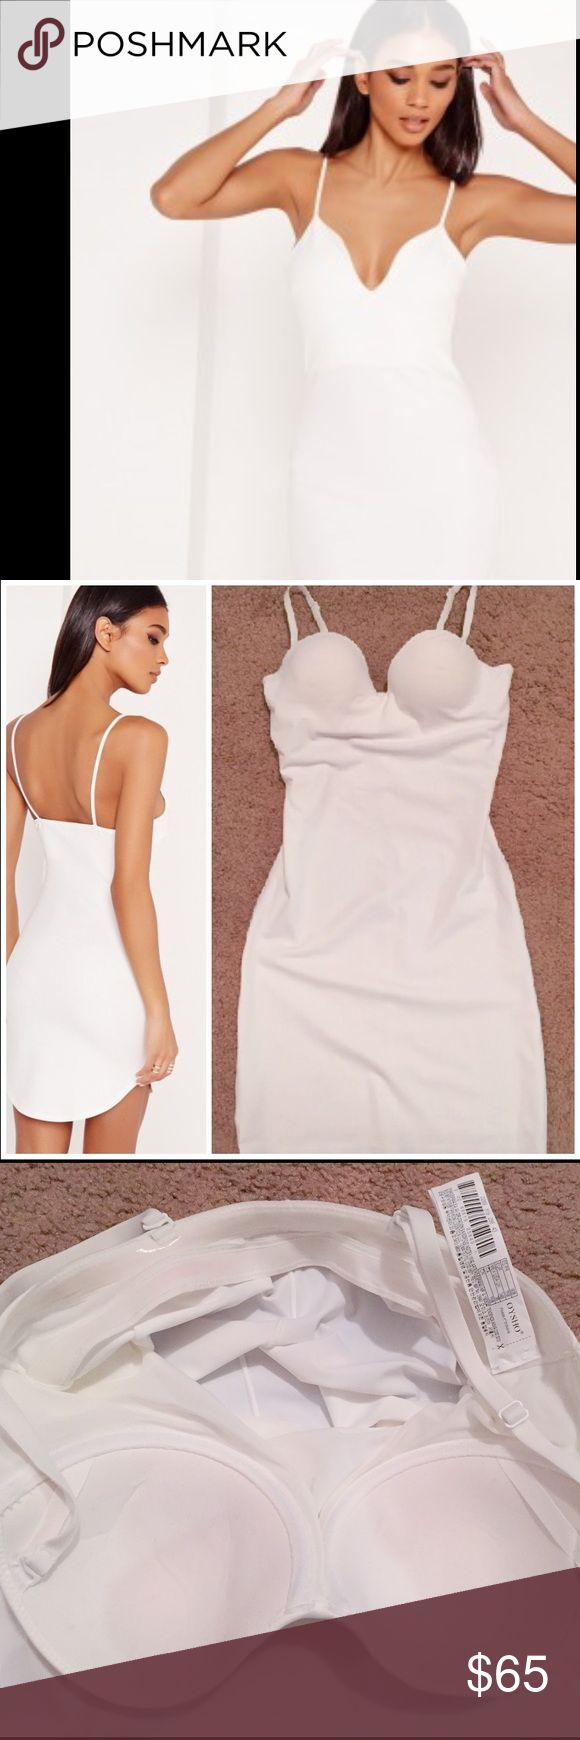 """NWOT ZARA White body shaping bodycon bra top dress NWOT Oysho White spaghetti straps body con slip dress. Brand new, no defects. Body con type with spaghetti straps and bra top. This is shape-forming slip, so it compresses the waist and emphasizes(?) the curves. Has mesh lining inside and has a sticky tape on the hem. I will not try this on but the main photo is close to its fit. Thick polyester, not see through but I still wouldn't wear colored underwear. Total length: 25"""", straps are…"""